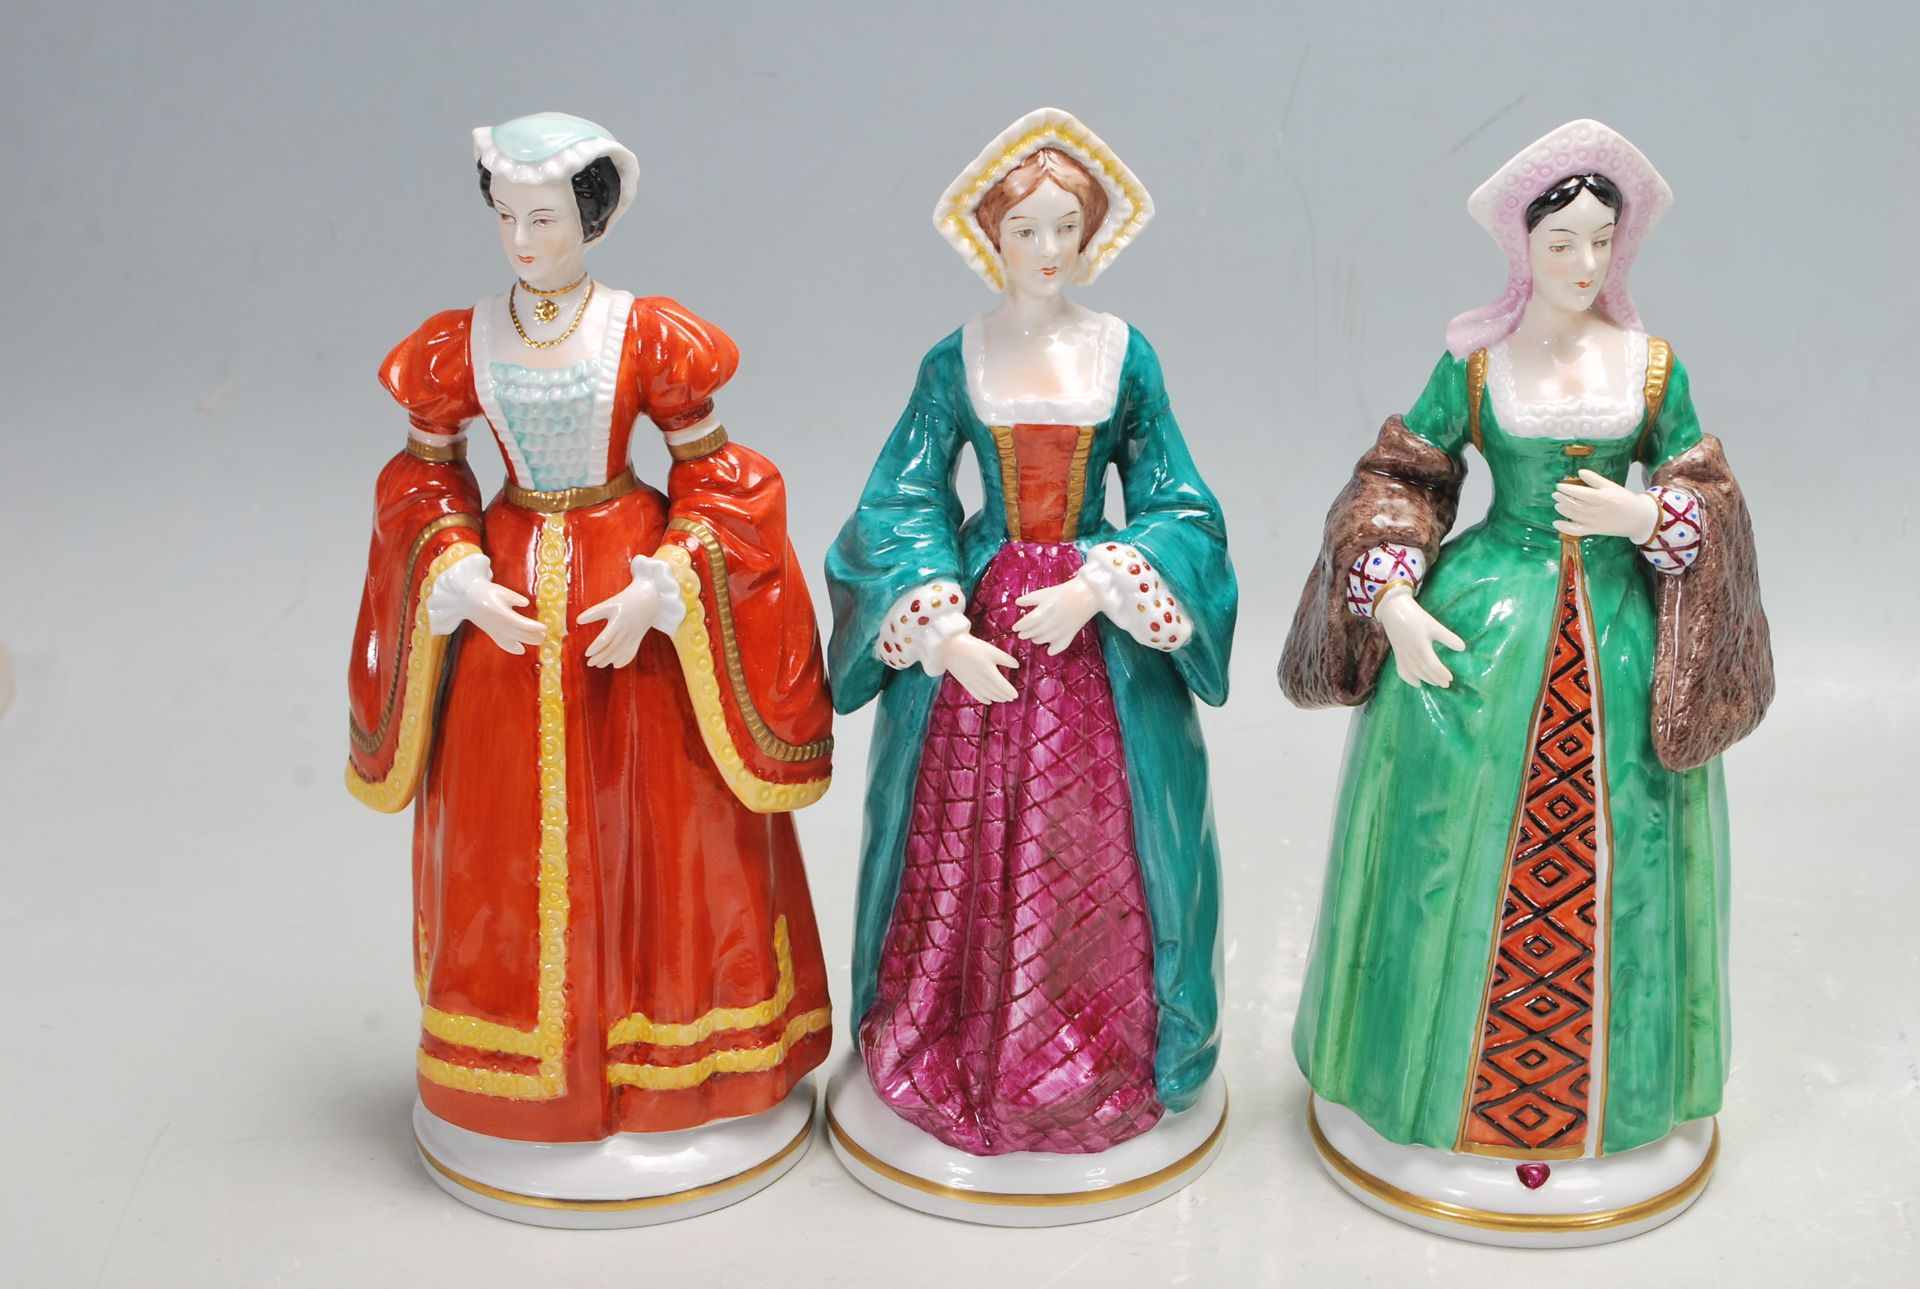 COLLECTION OF SEVEN SITZEDORF CERAMIC PORCELAIN FIGURINES OF HENRY VIII AND HIS SIX WIVES - Image 2 of 8